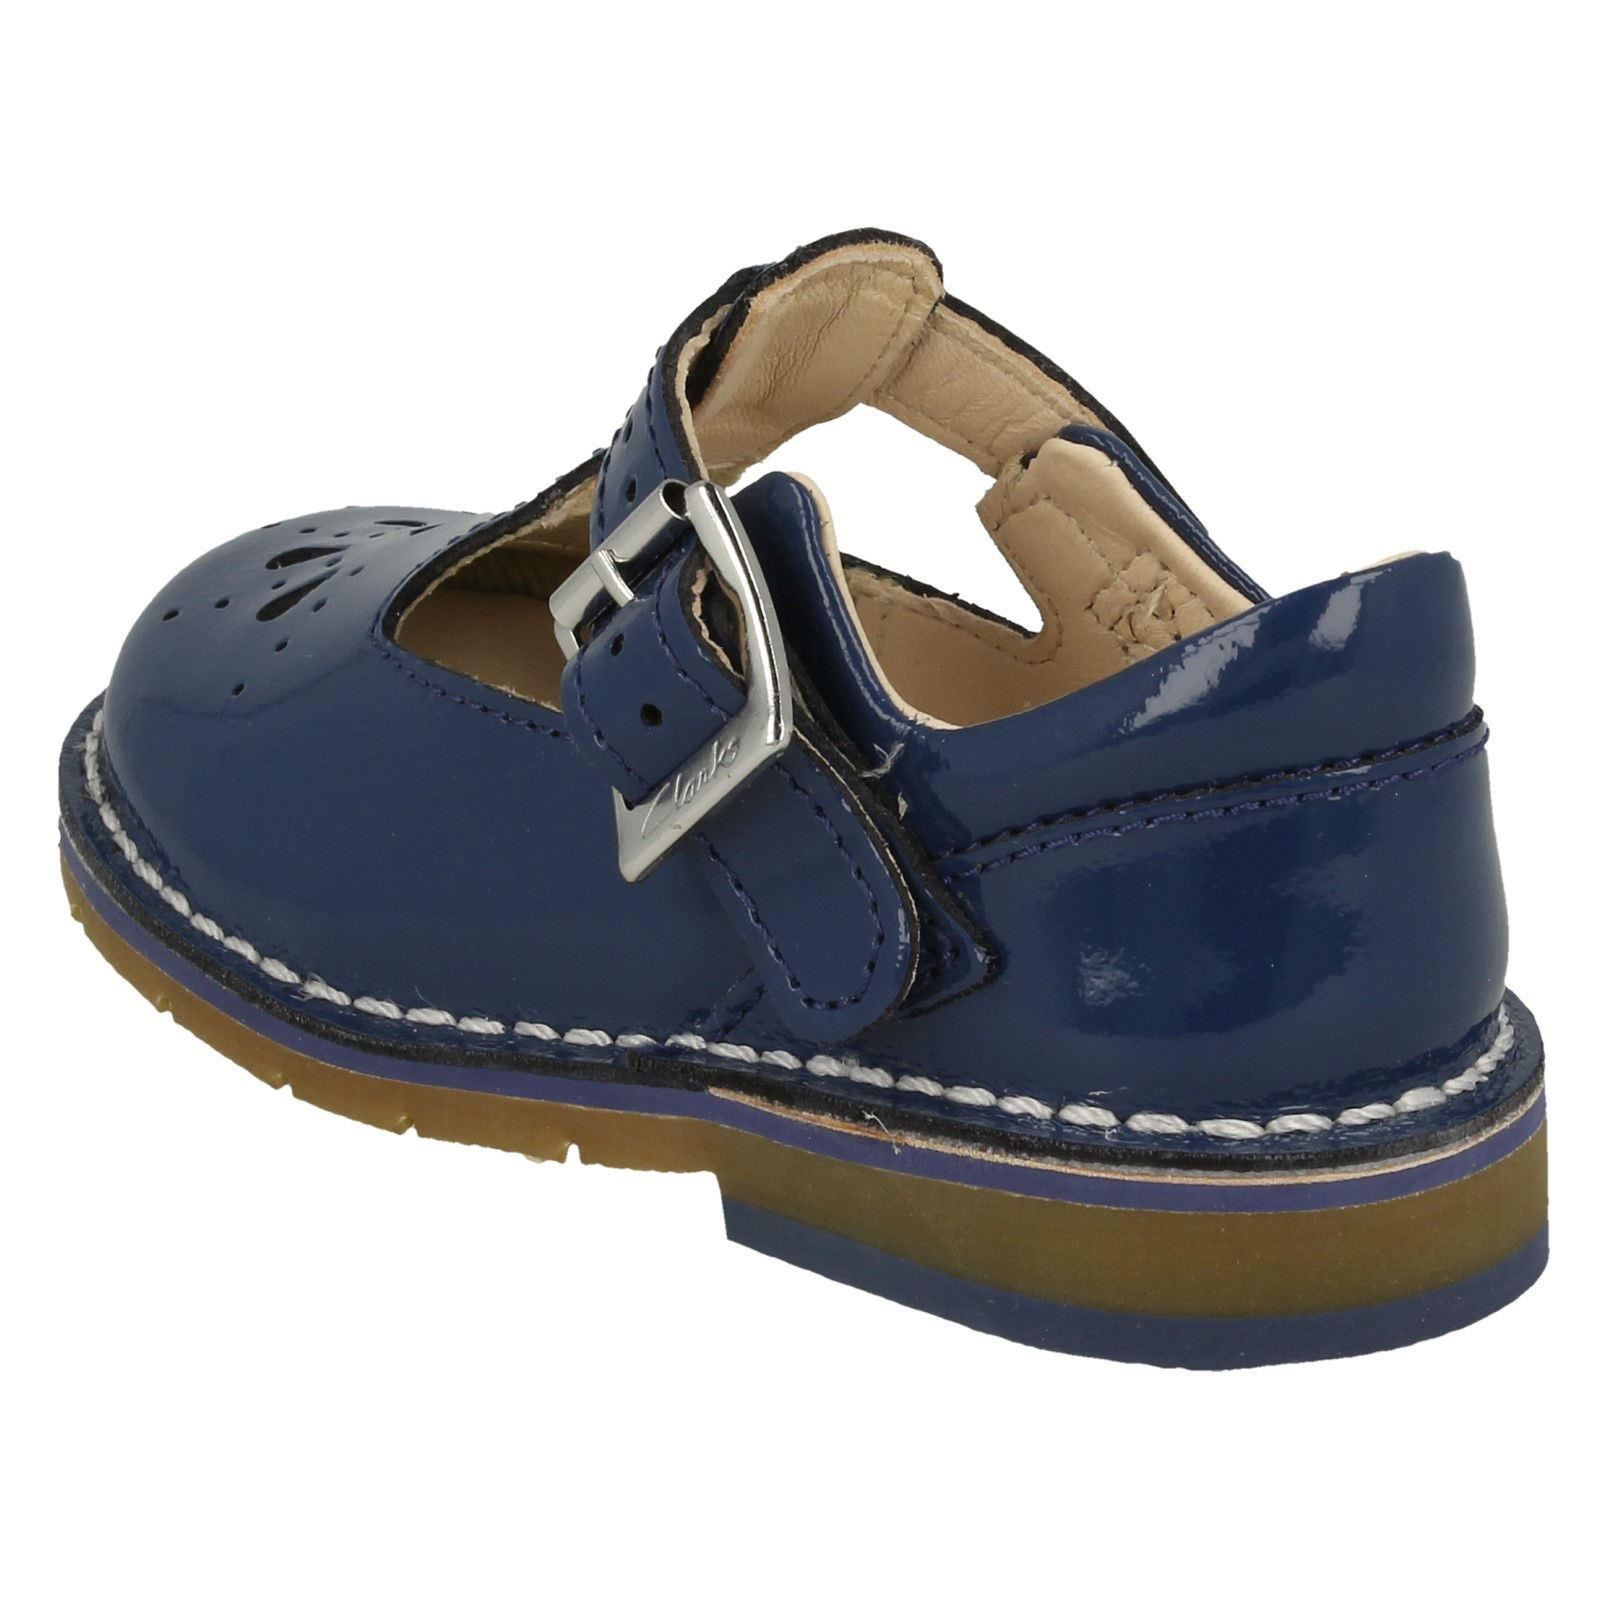 Yarn Smart First Girls Blue Weave Clarks Shoes Casual w7qqX